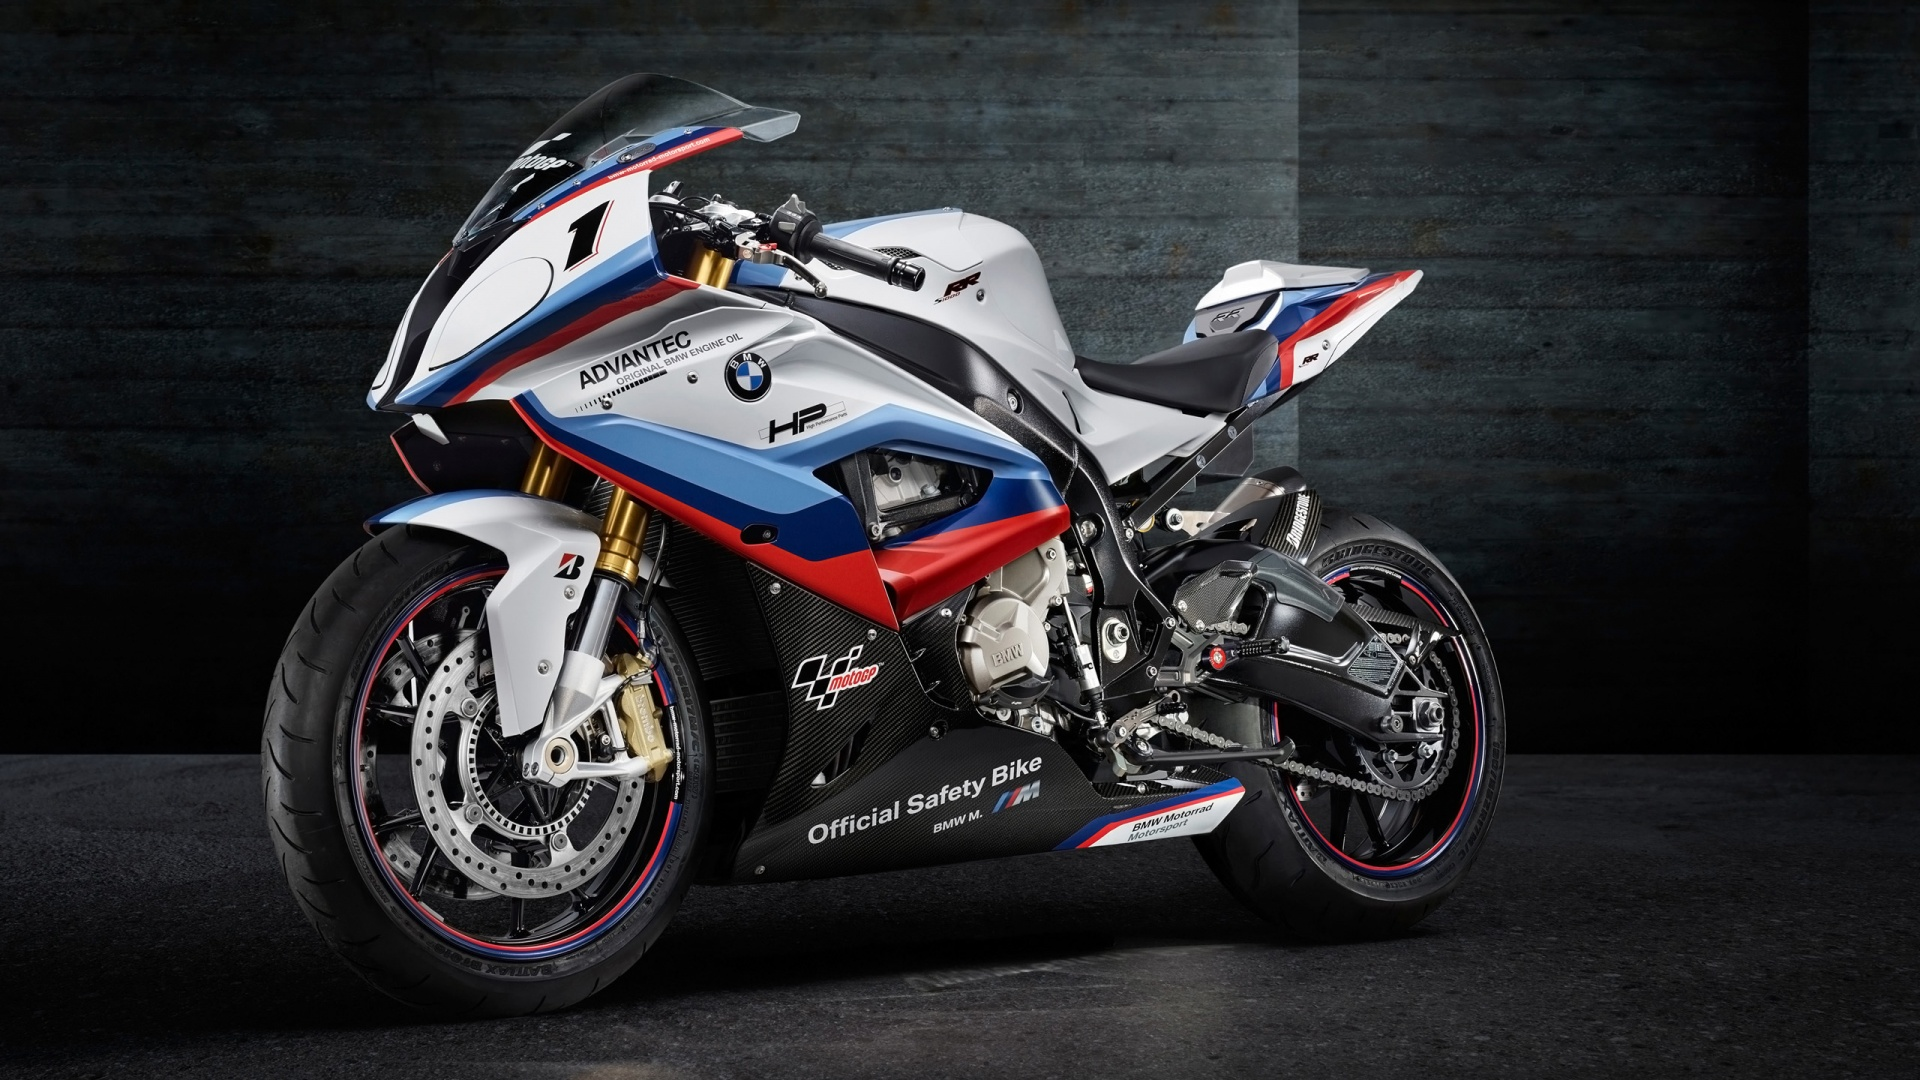 2015 BMW M4 MotoGP Safety Bike Wallpapers HD Wallpapers 1920x1080